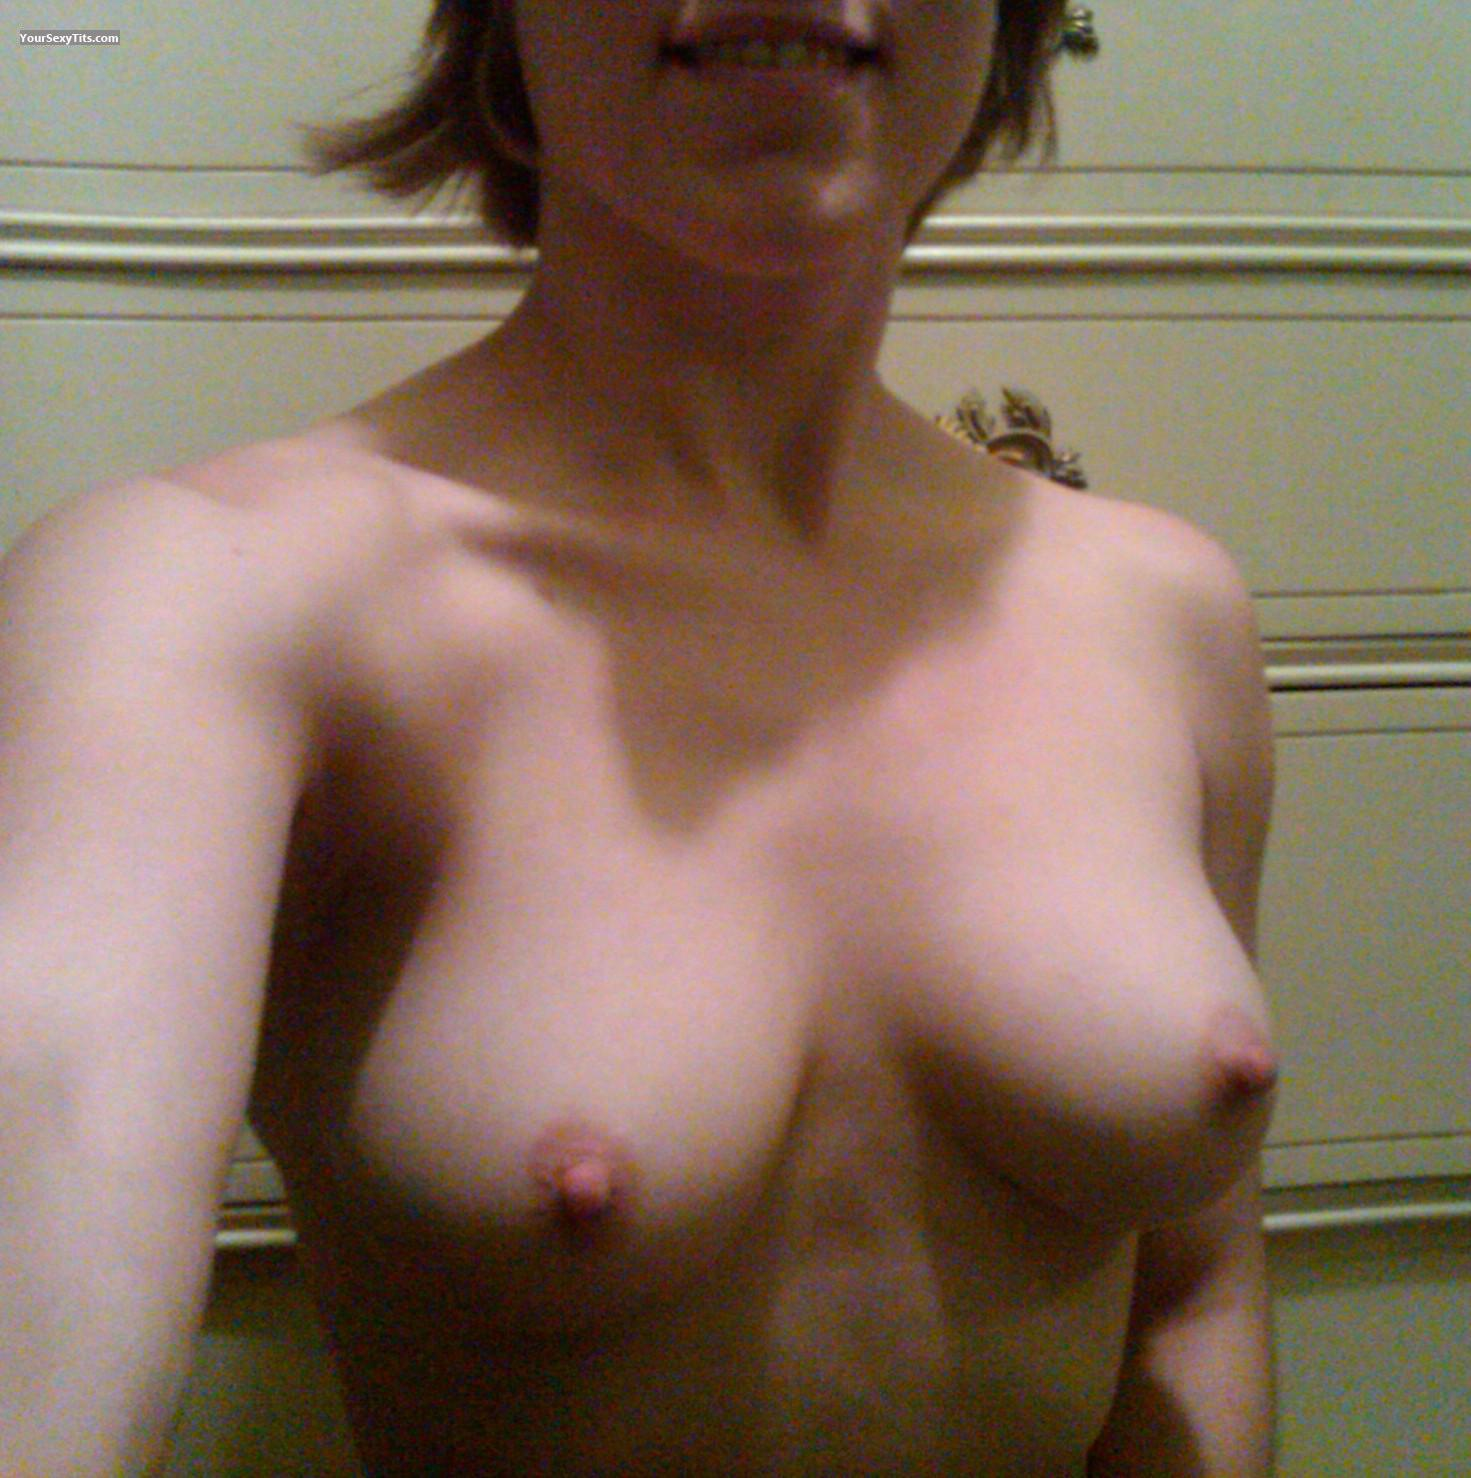 Tit Flash: My Small Tits (Selfie) - Barbie137 from United States